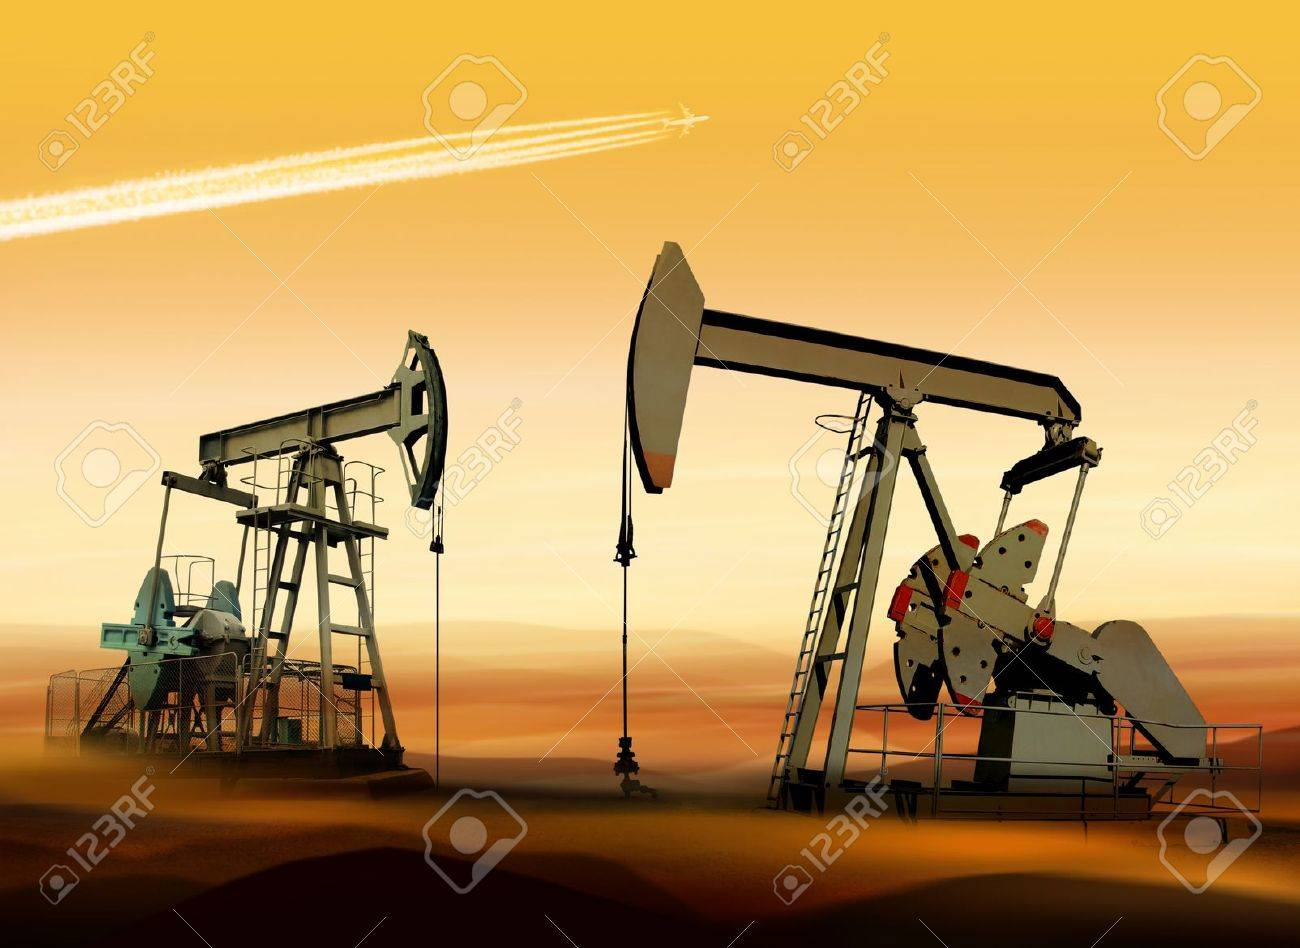 Working oil pumps in desert place of Middle East Stock Photo - 9054579